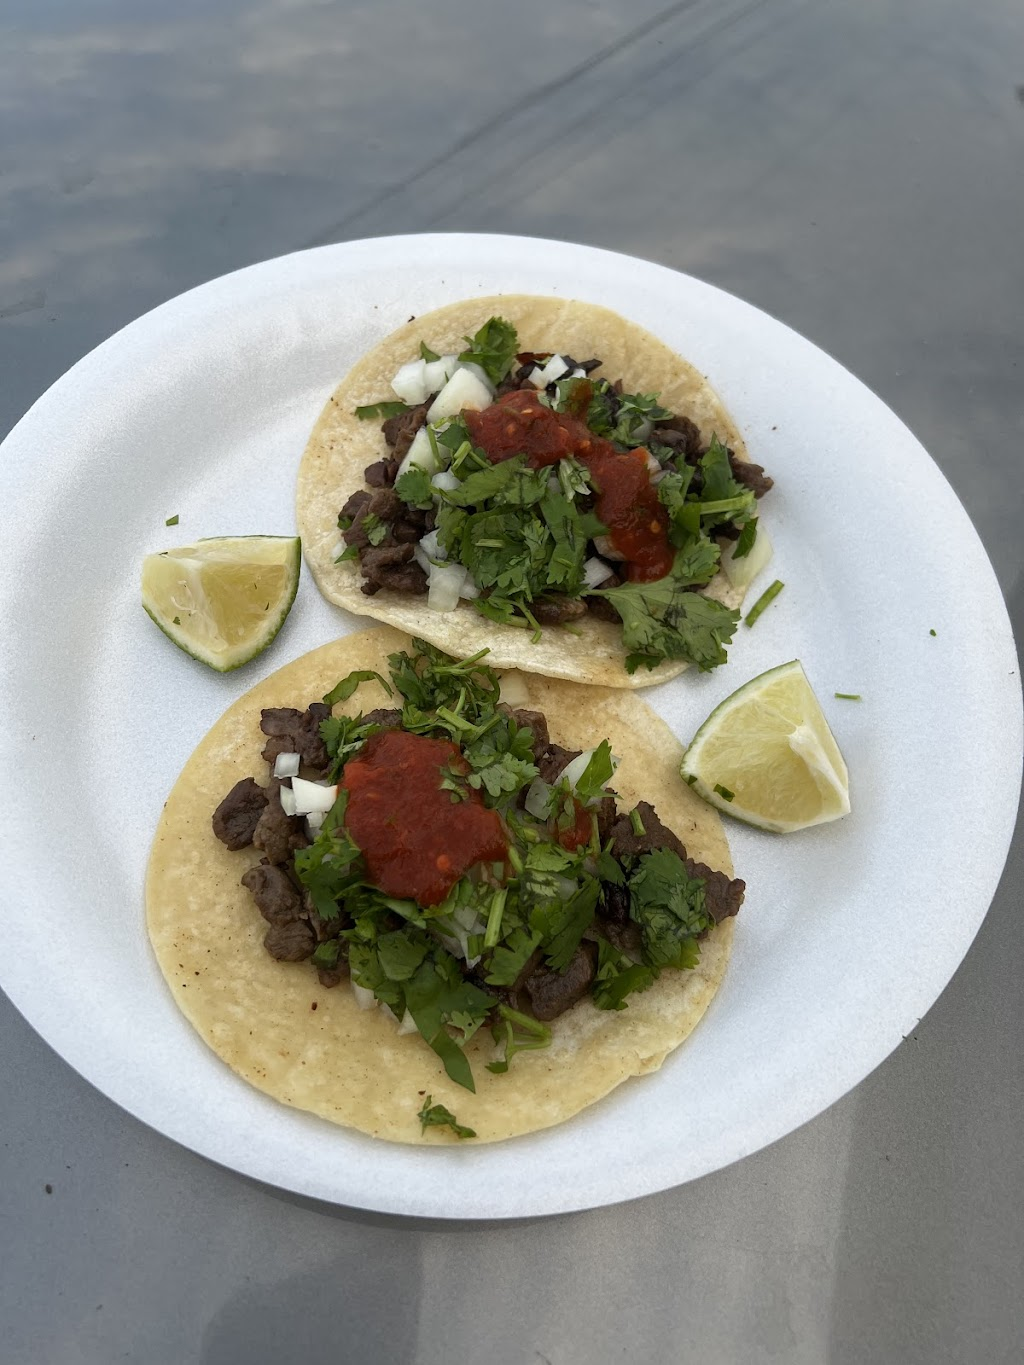 Tacos Sanchez   restaurant   2200 Old Trail Rd, Goldsboro, PA 17319, USA   7173534464 OR +1 717-353-4464